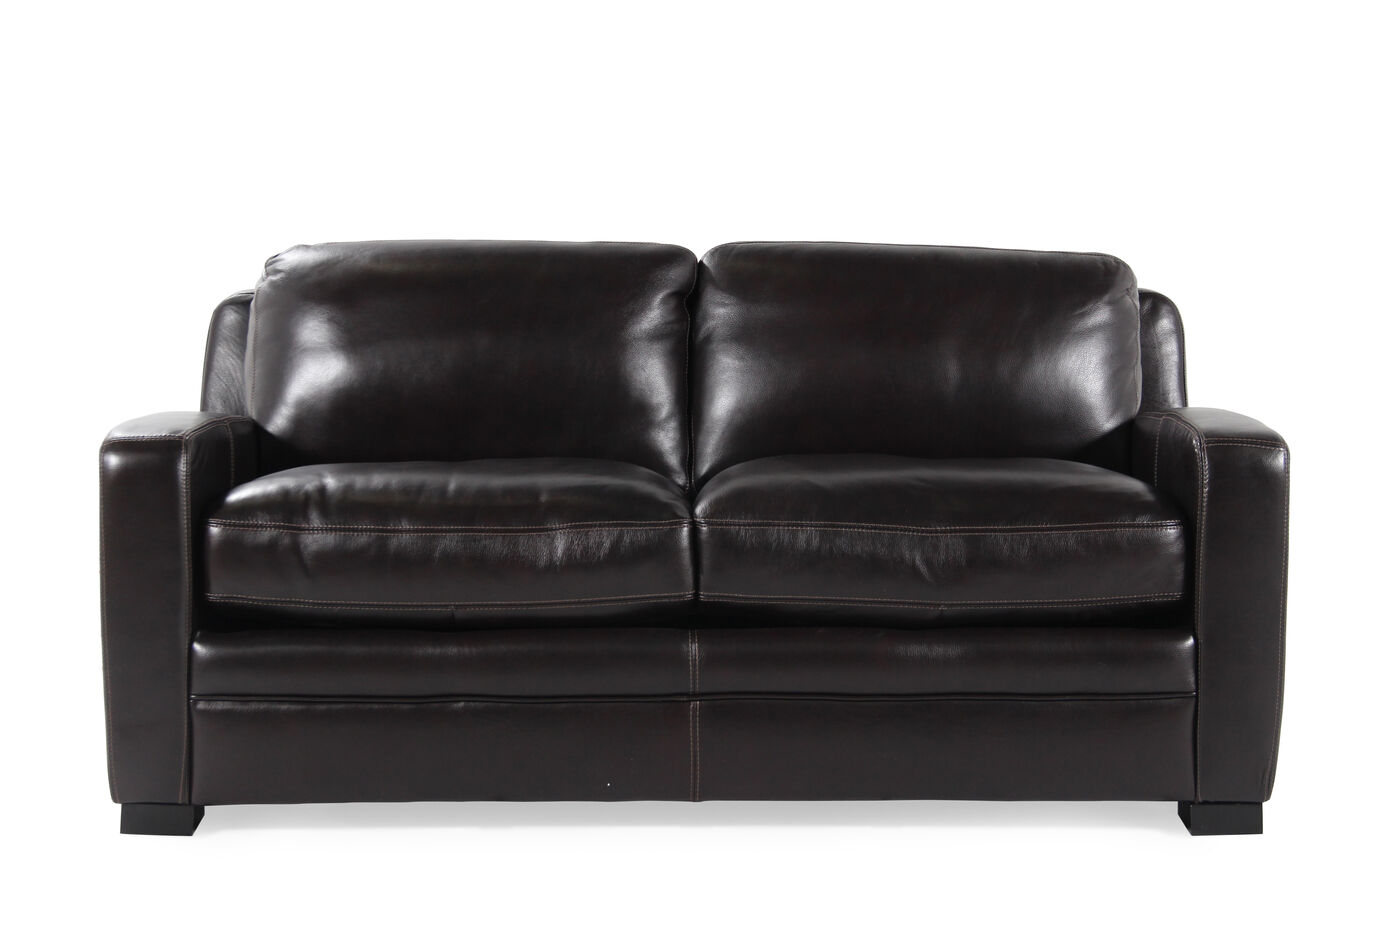 Traditional Leather 73 Quot Full Sleeper Sofa In Black